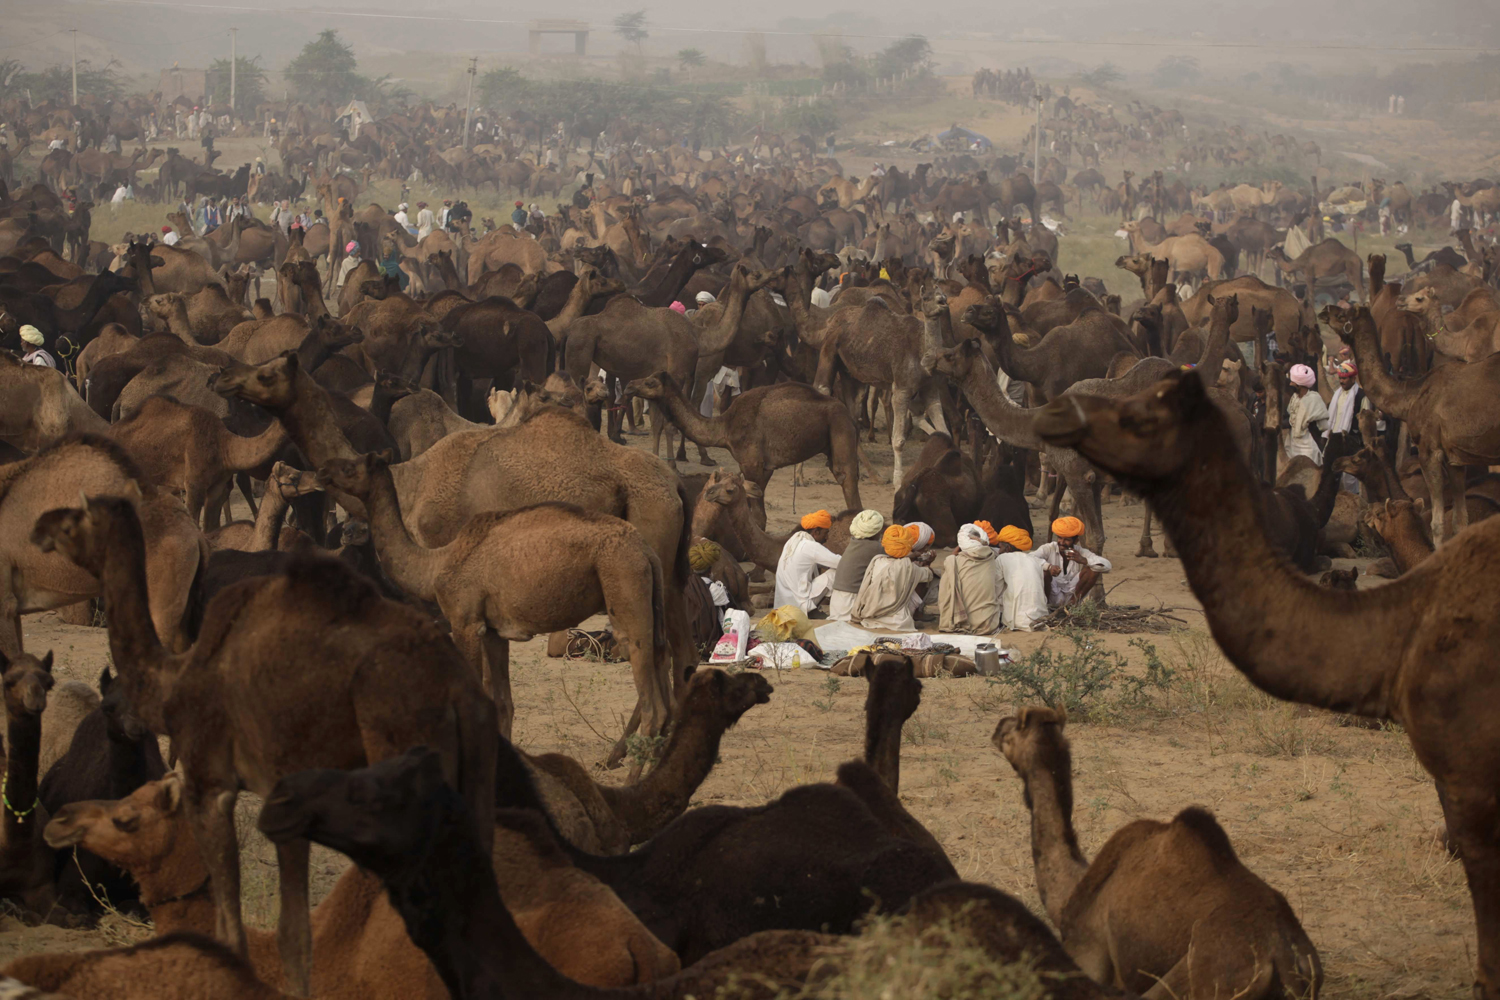 Nov. 10, 2013. Indian camel herders sit near their camels during the annual cattle fair in Pushkar, in the western Indian state of Rajasthan, India.